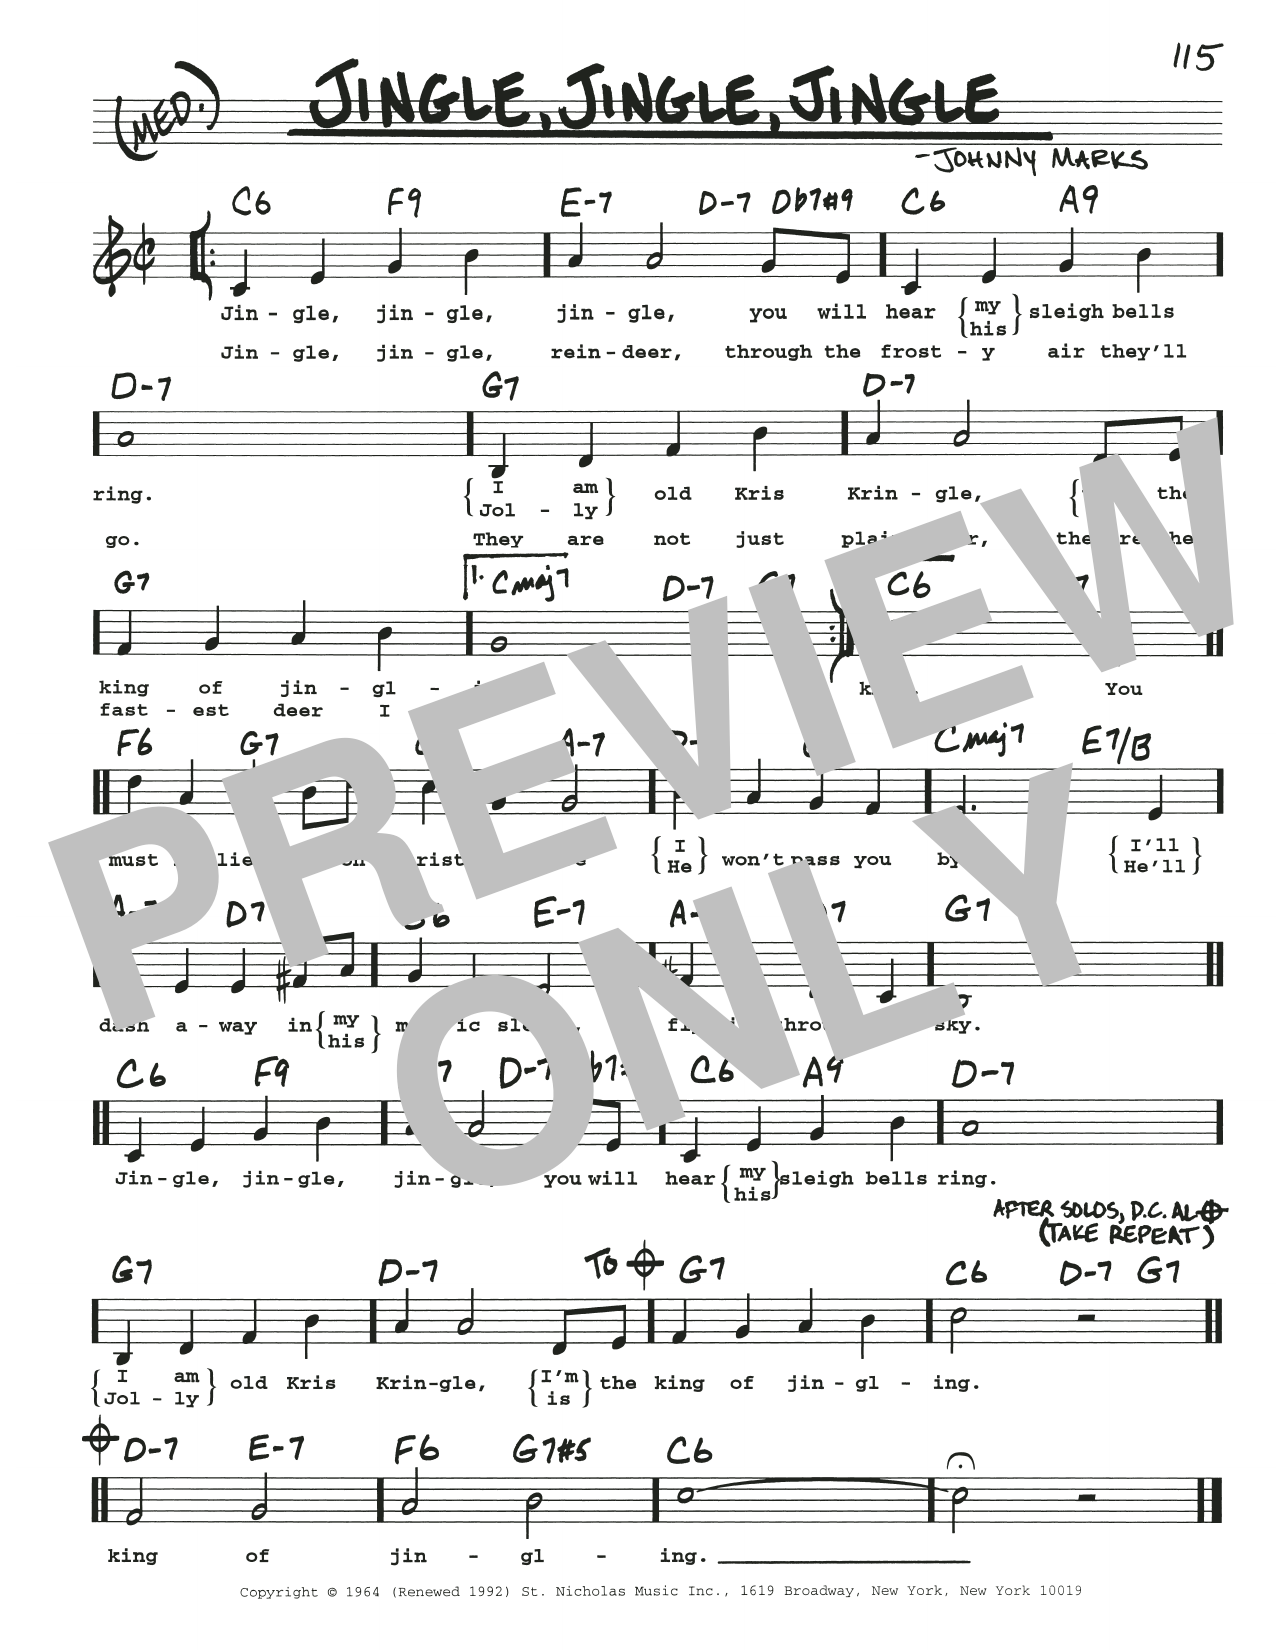 Jingle, Jingle, Jingle Sheet Music